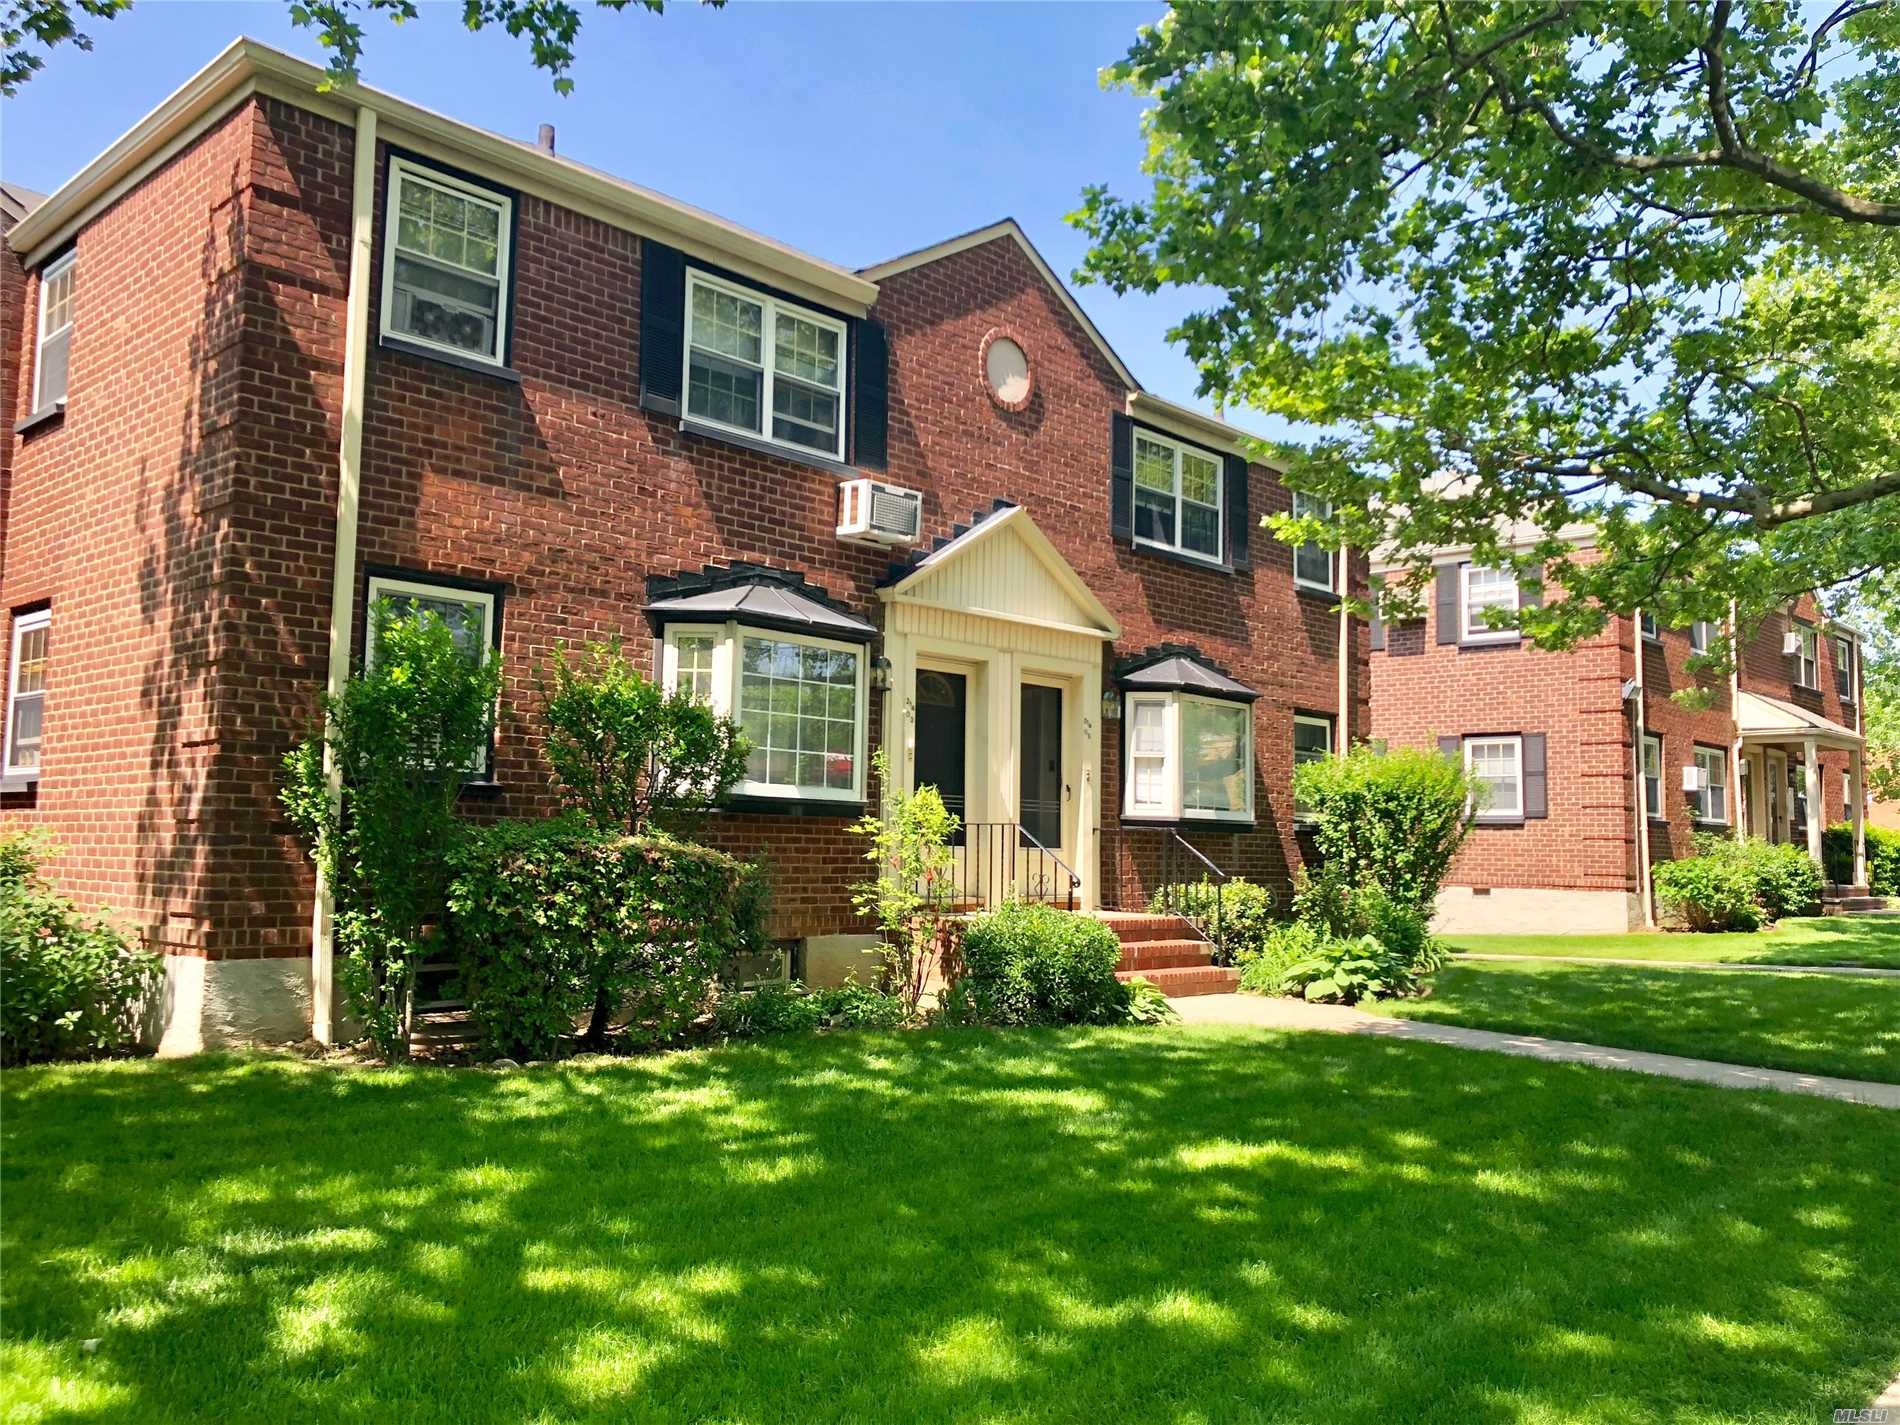 Sun Drenched Spacious Corner Newly Listed In Hollis Court ! Features Crisp Hardwood Flooring, Updated Kitchen With Washer & Dryer Combo, Updated Bathroom, Spacious Bedroom & Walk In Closet. Near Schools, Shops, & Transportation.